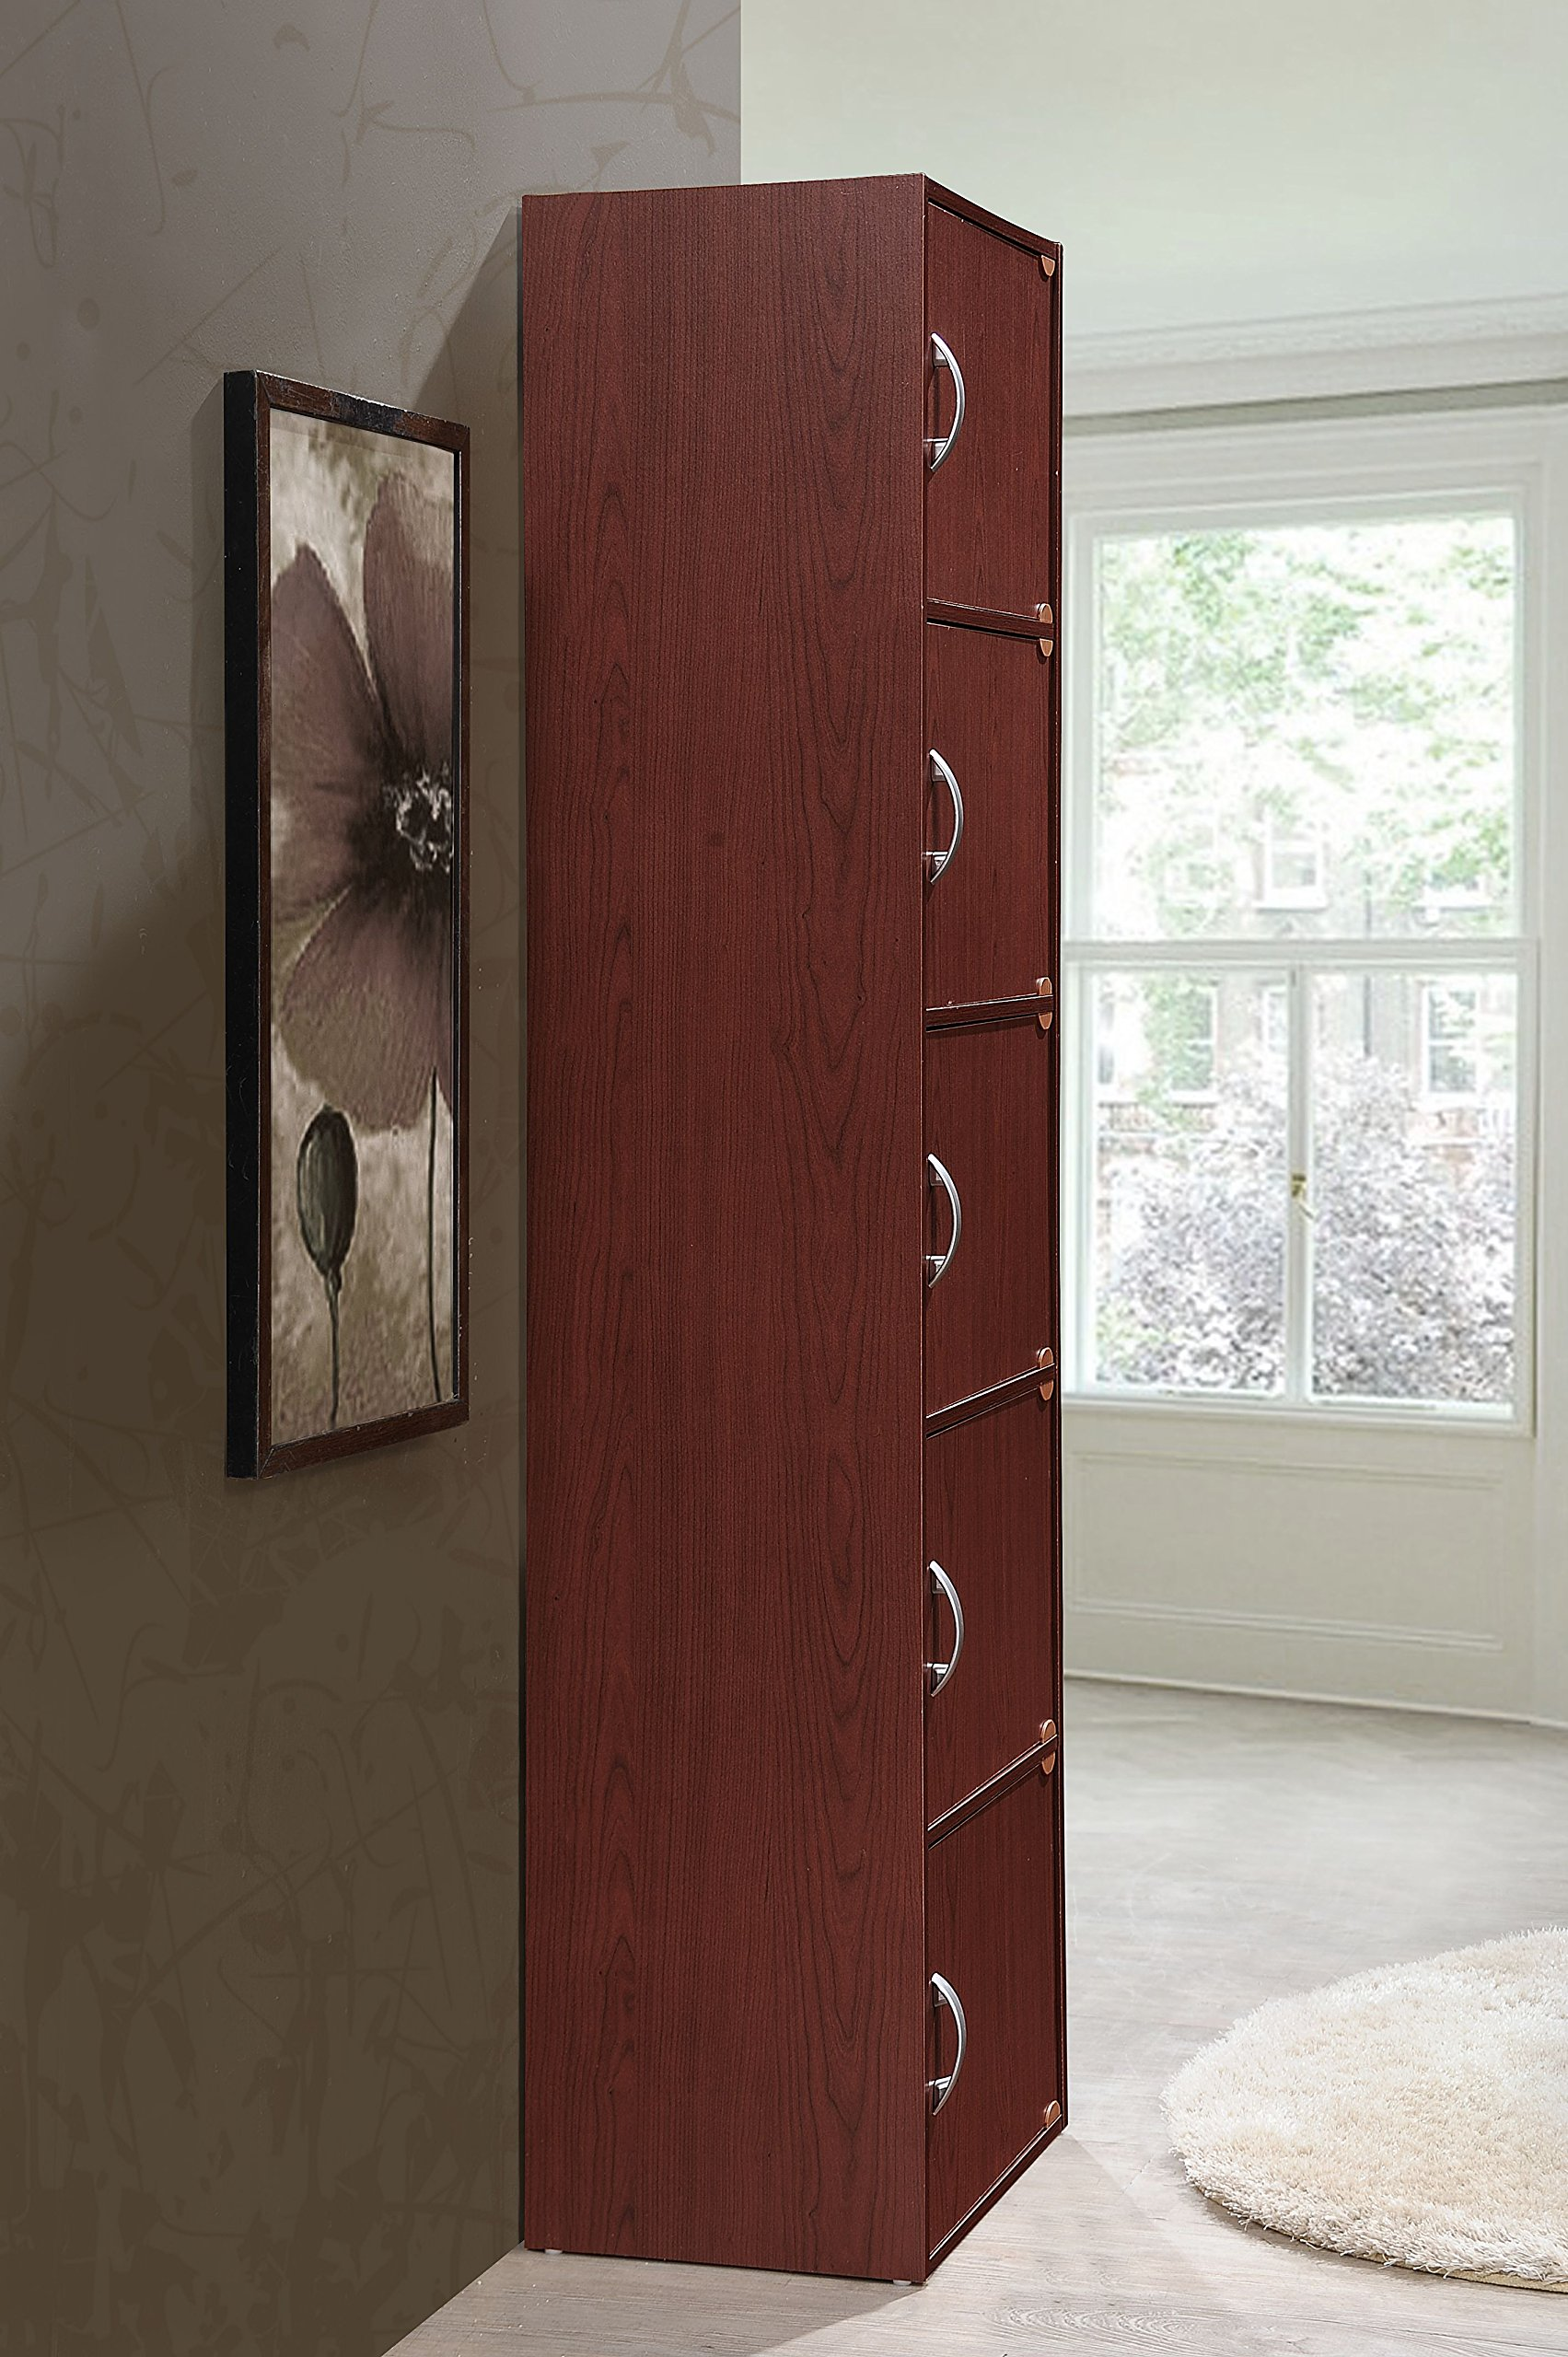 Hodedah 5 Door, Five Shleves, Enclosed Storage Cabinet, Mahogany by HODEDAH IMPORT (Image #3)